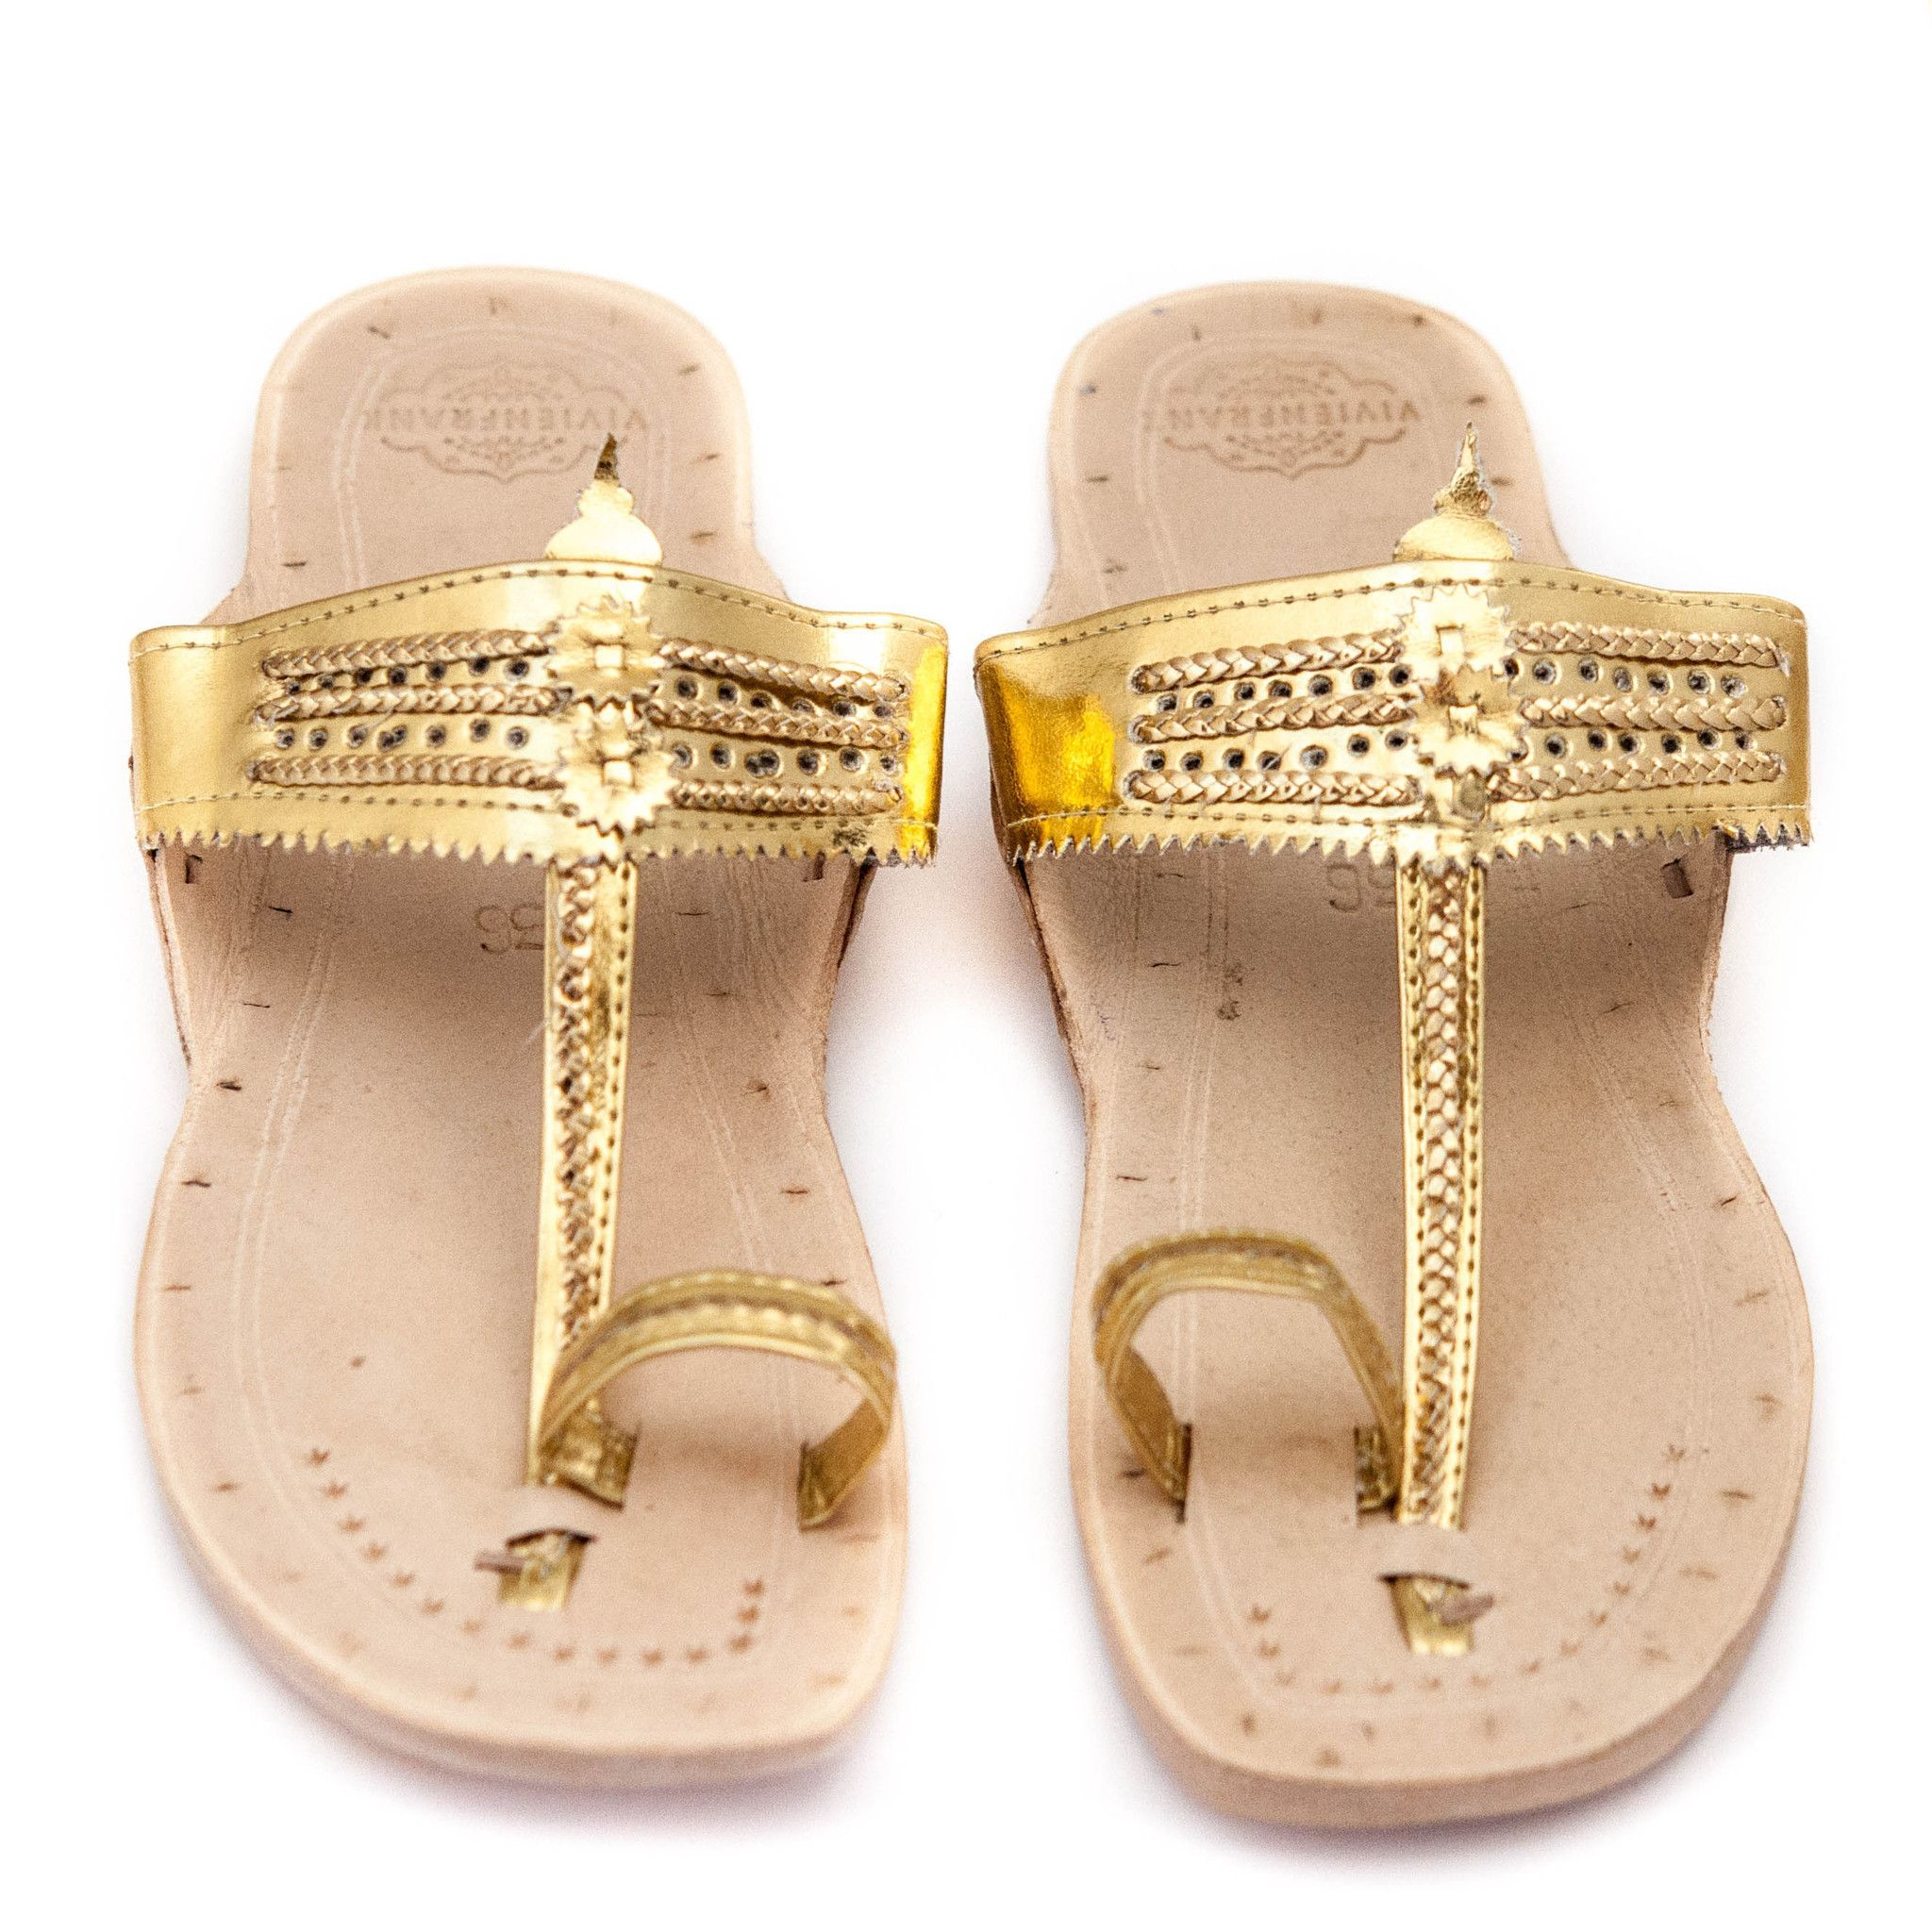 Toe ring sandals jesus walkers toe ring sandals toe rings and toe ring sandals jesus walkers nvjuhfo Image collections